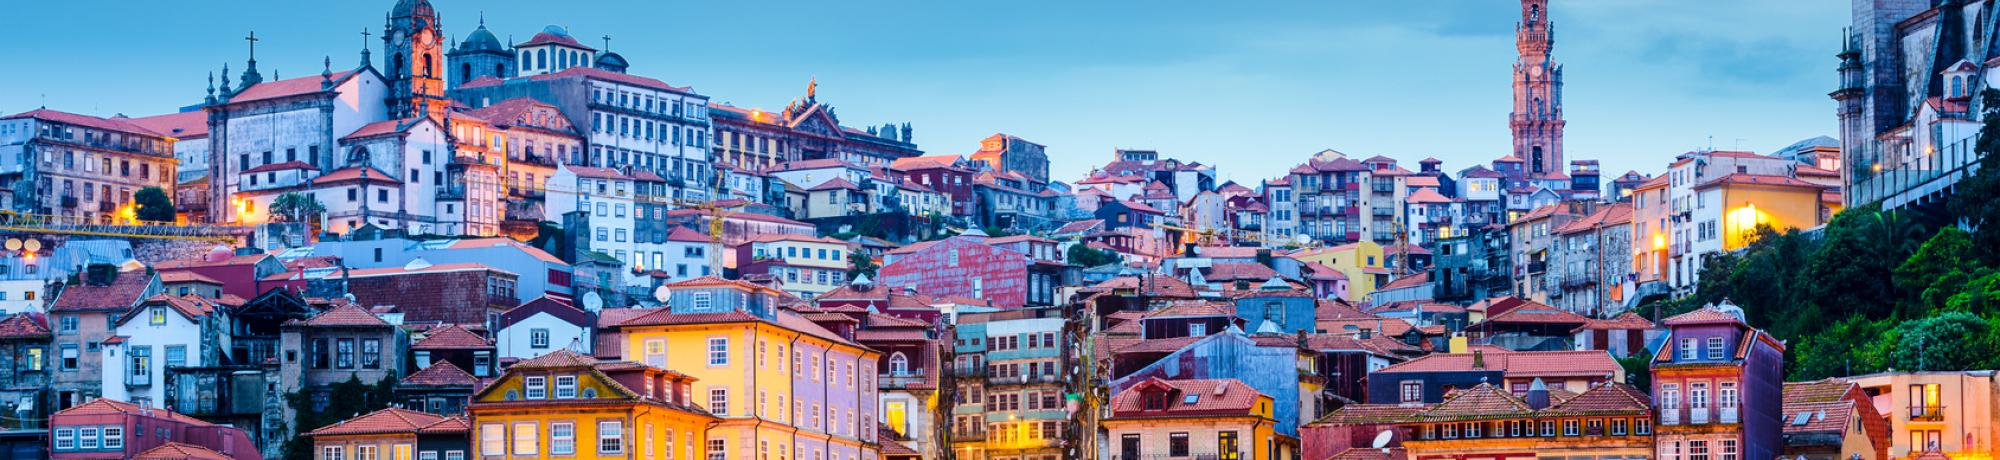 UC Davis Study Abroad, Summer Abroad Portugal, Portugal Hidden Gem Program, Header Image, Cost Page